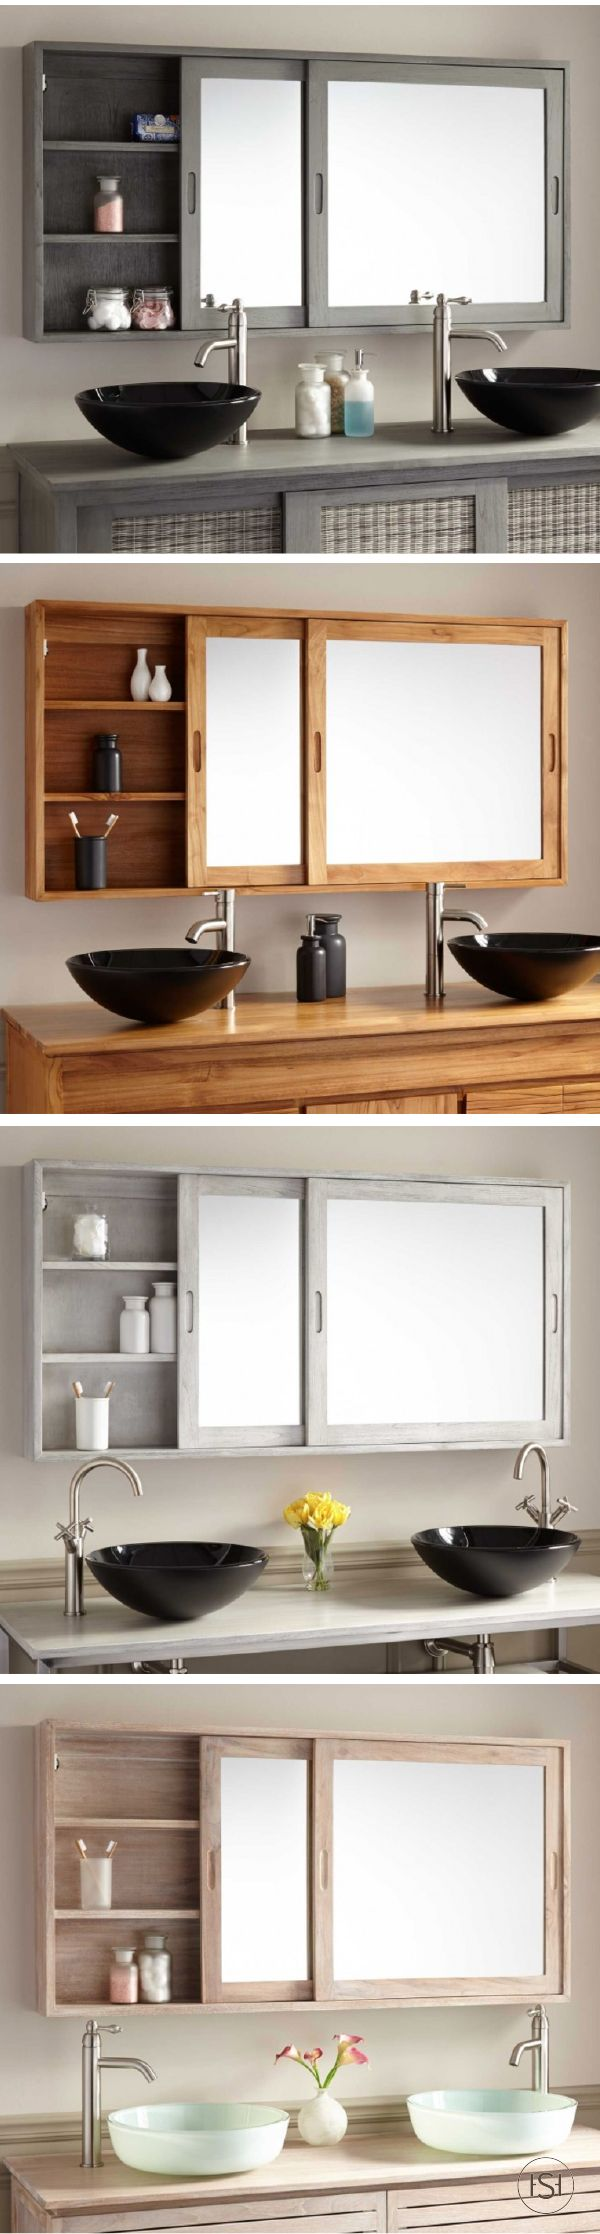 """'Tis the season to get your home organized for the holidays! Give your master bathroom extra storage space with the 55"""" Wulan Teak Medicine Cabinet. It's the most stylish way to store toiletries and bathroom essentials since it comes in a variety of colors and finishes."""